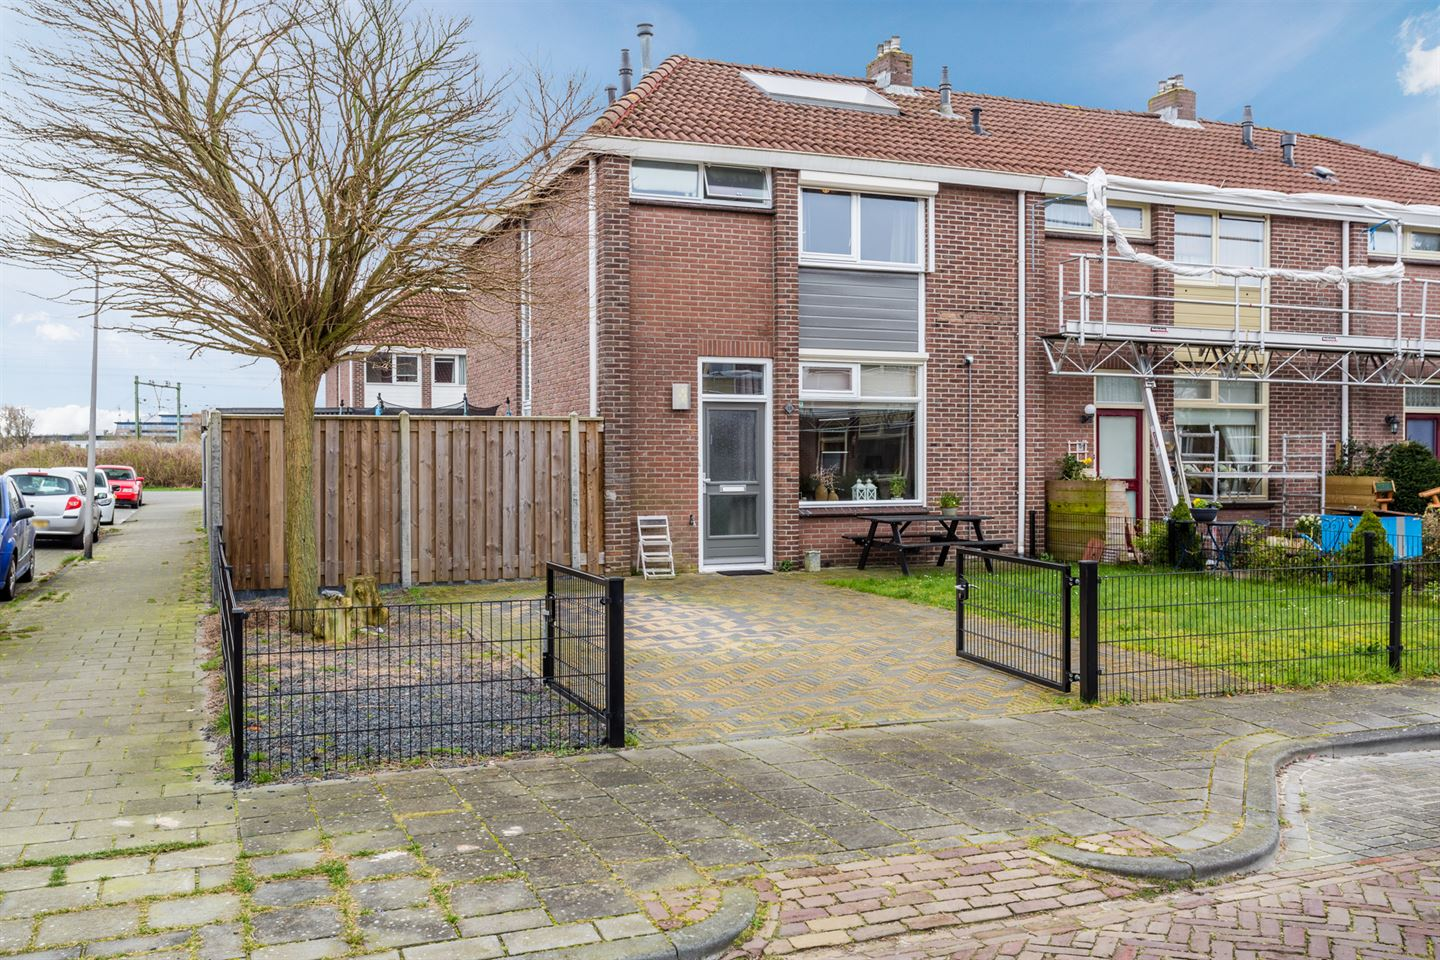 View photo 1 of Dokter A.M. Dhontstraat 18